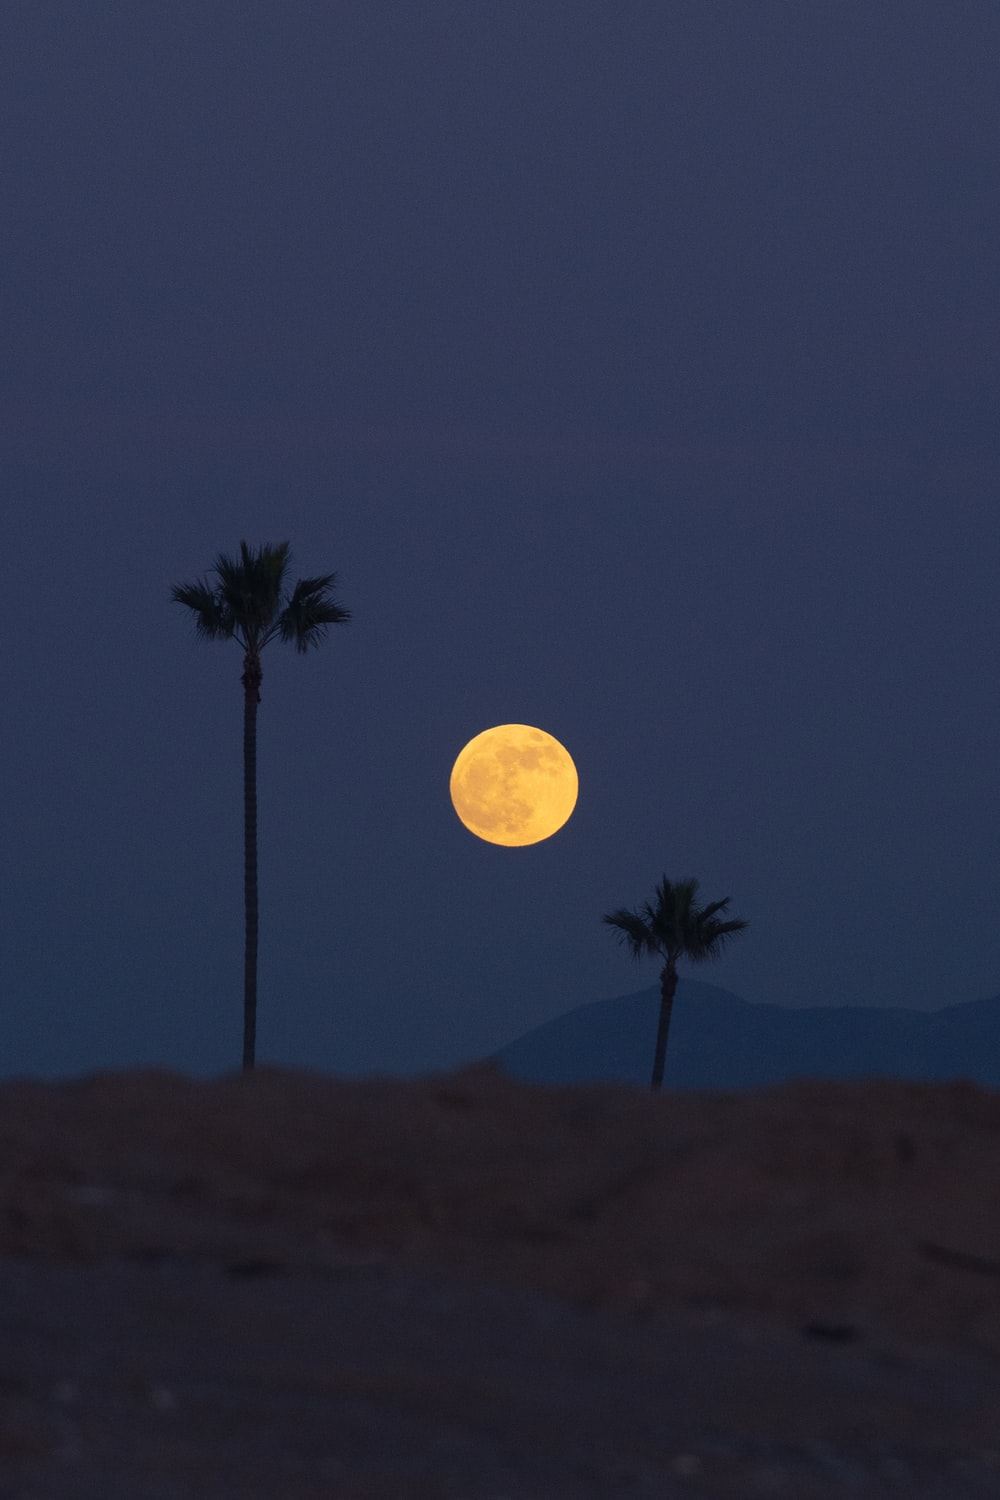 full moon over the palm trees